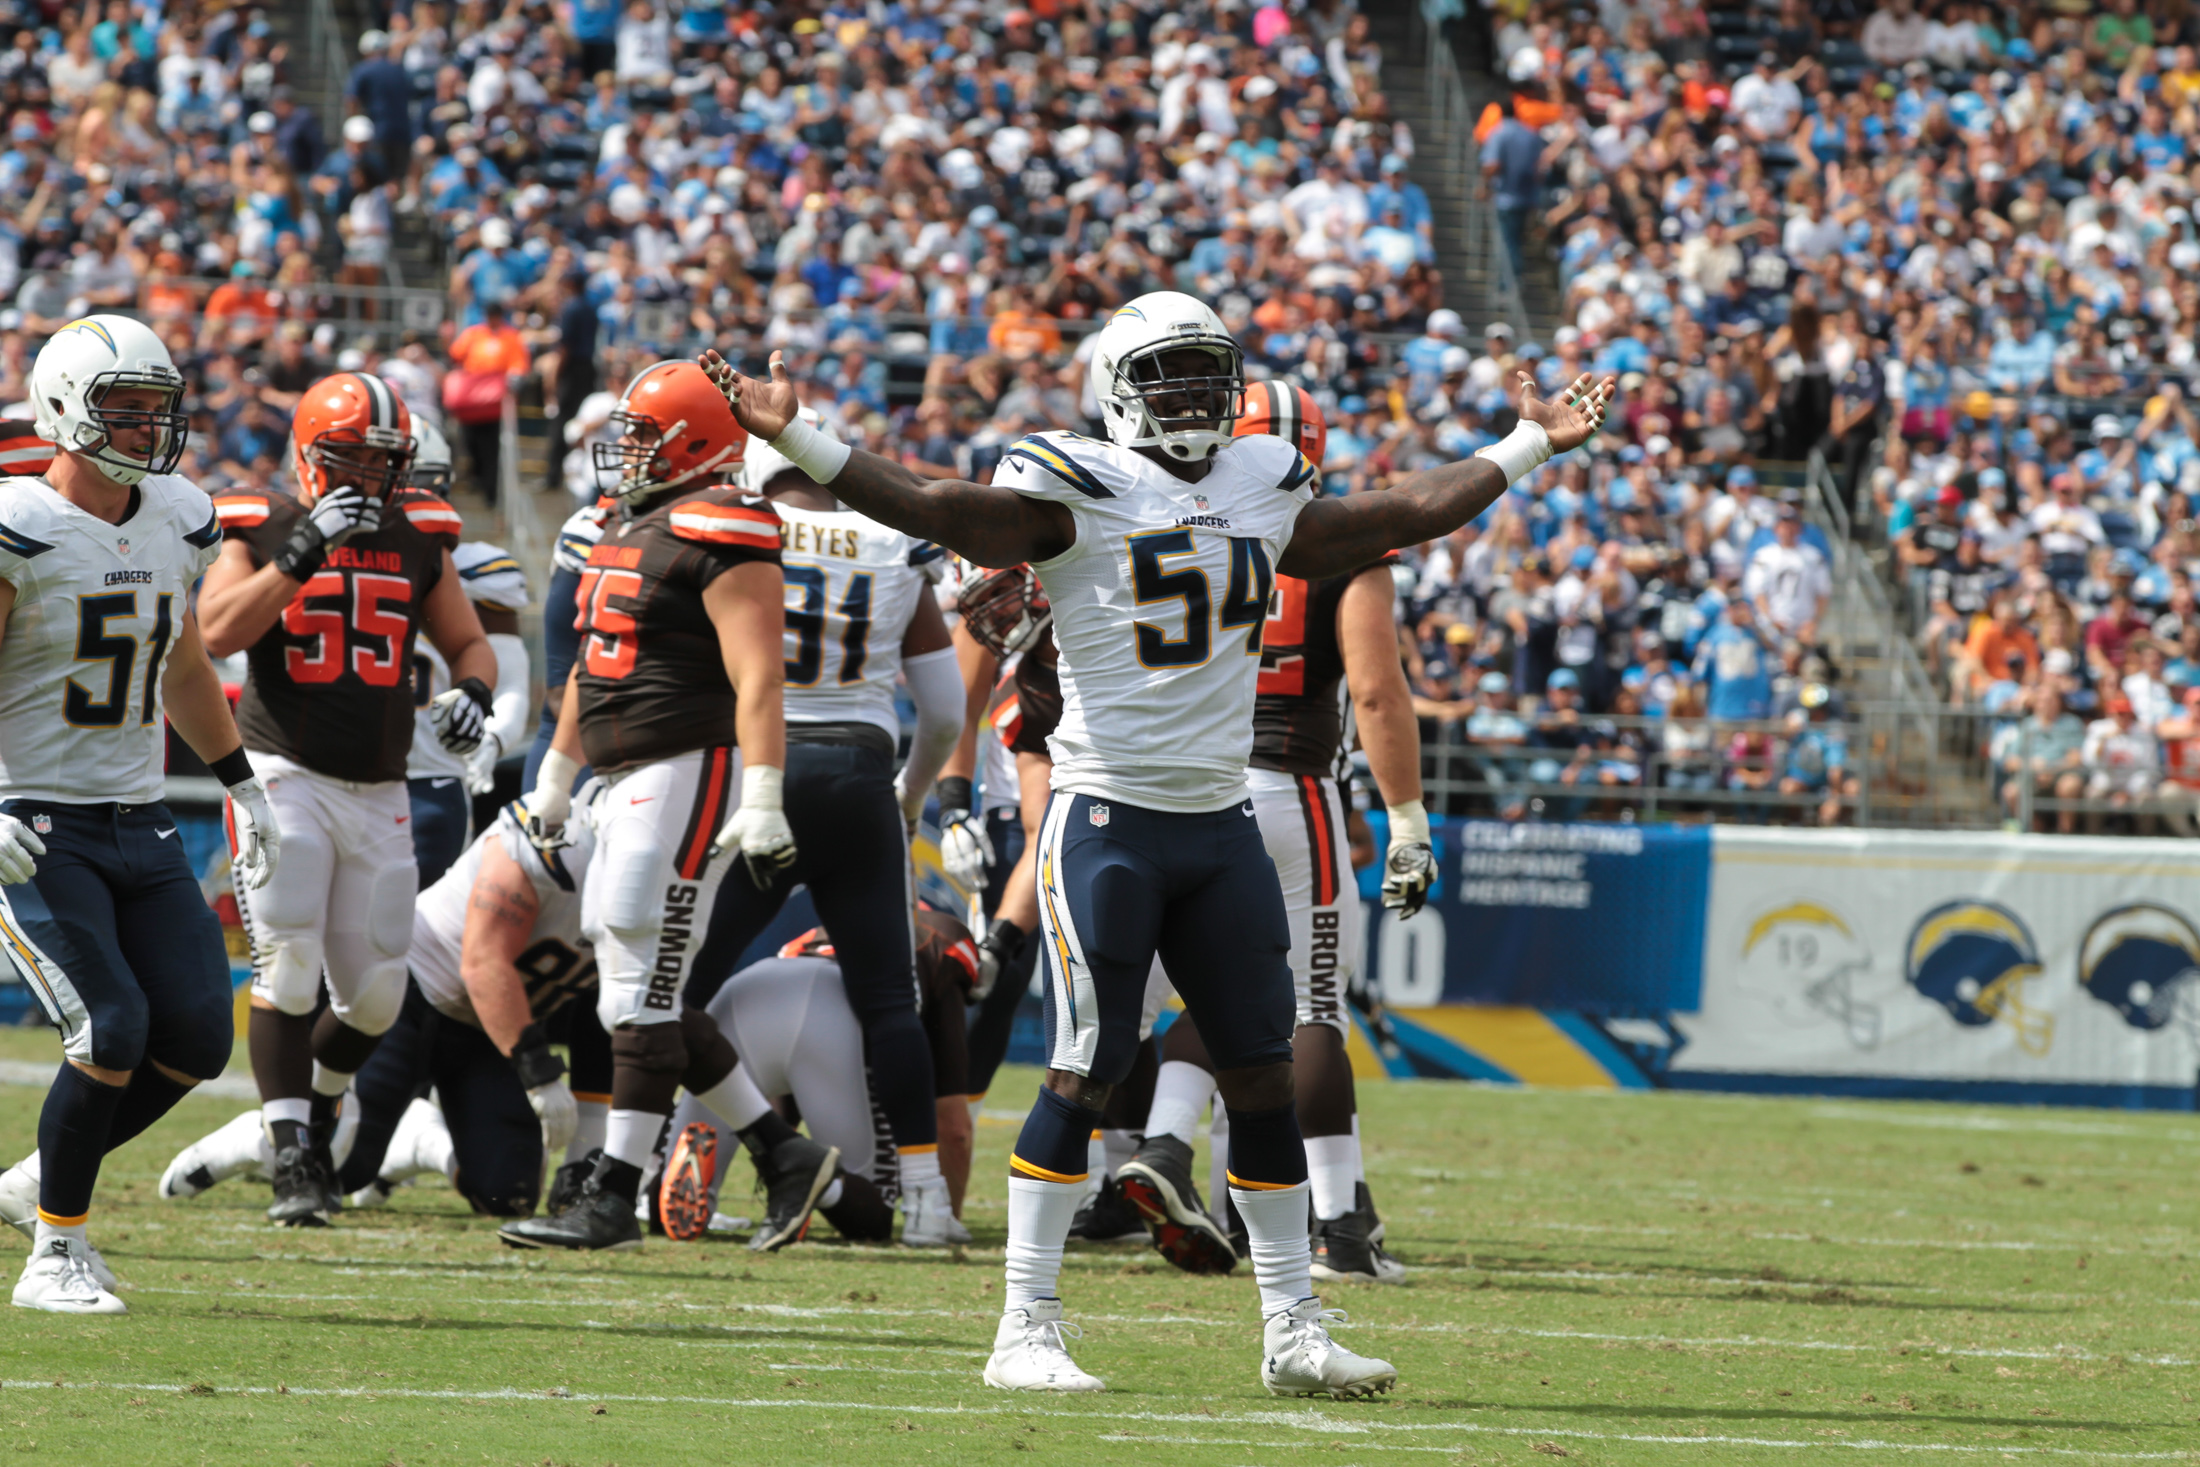 San Diego Chargers Beat Cleveland Browns with late Field Goal 30